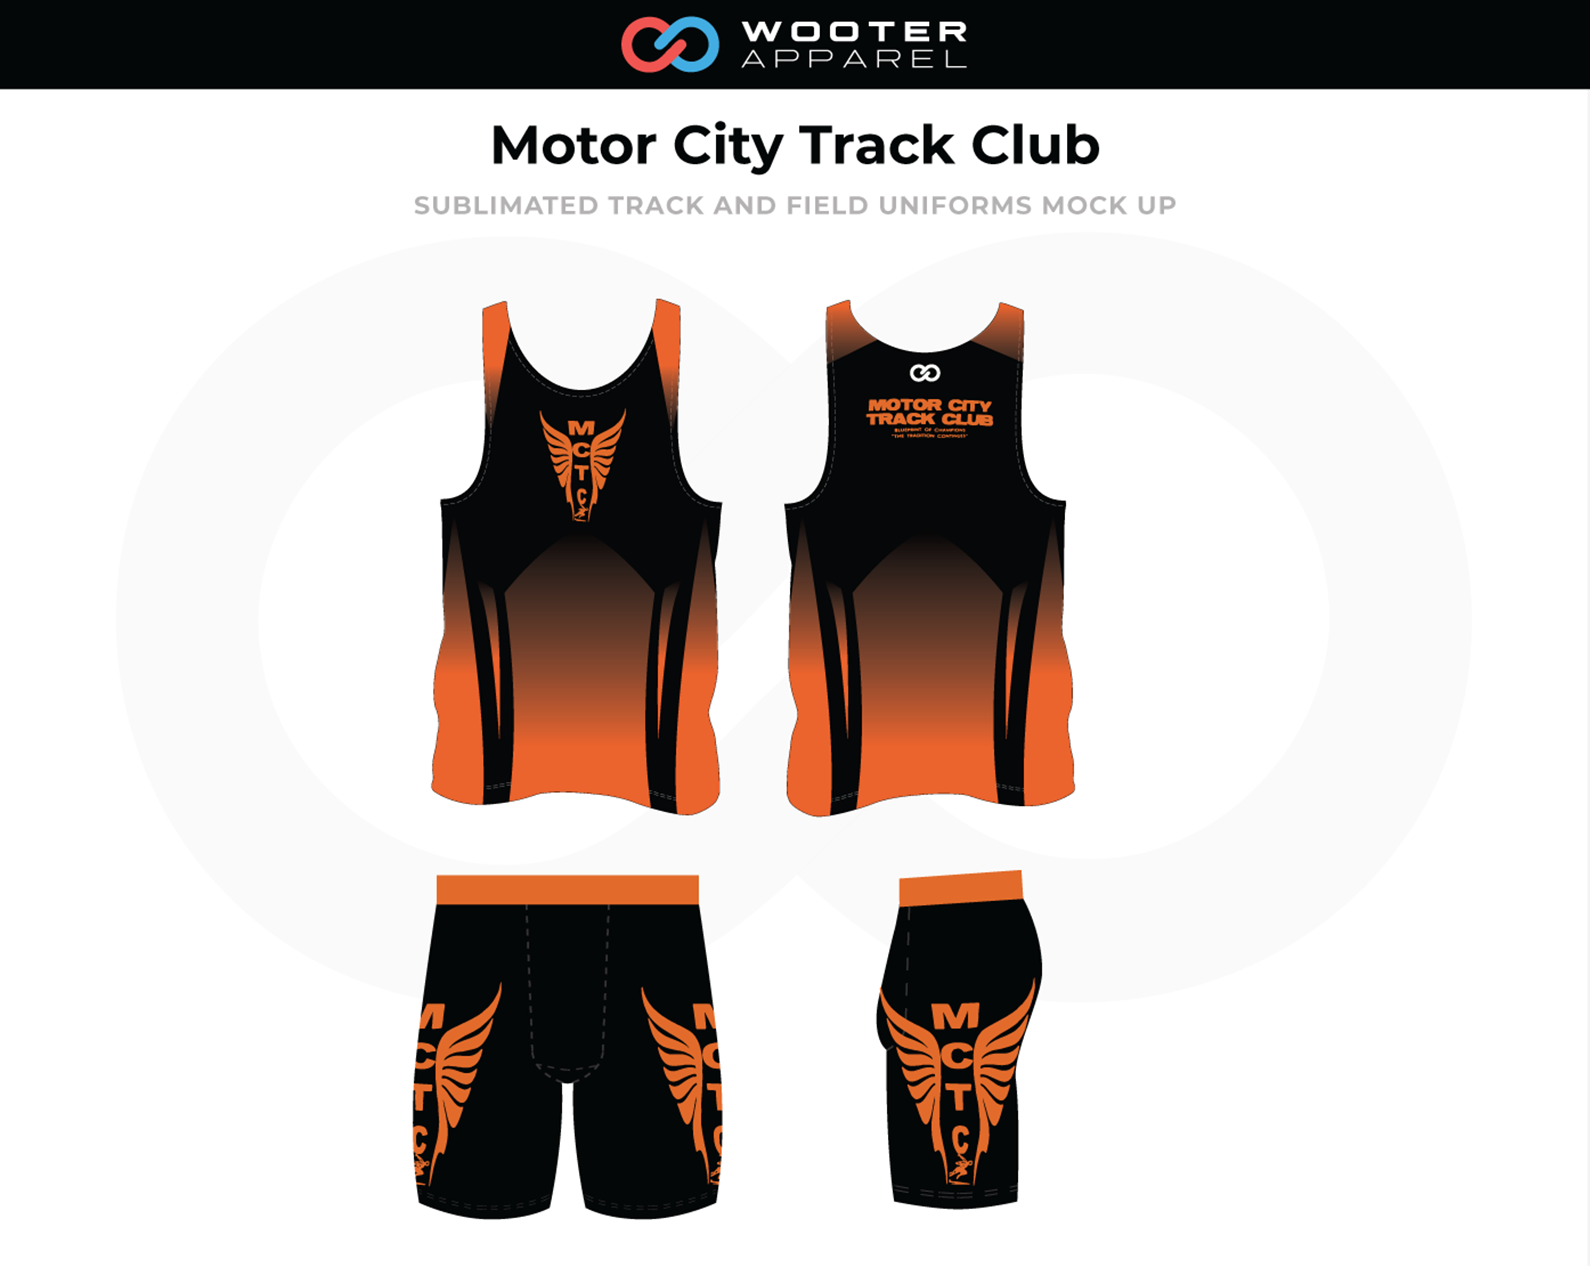 Motor-City-Track-Club-Sublimated-Track-and-Field-Uniforms_v1_2018.png